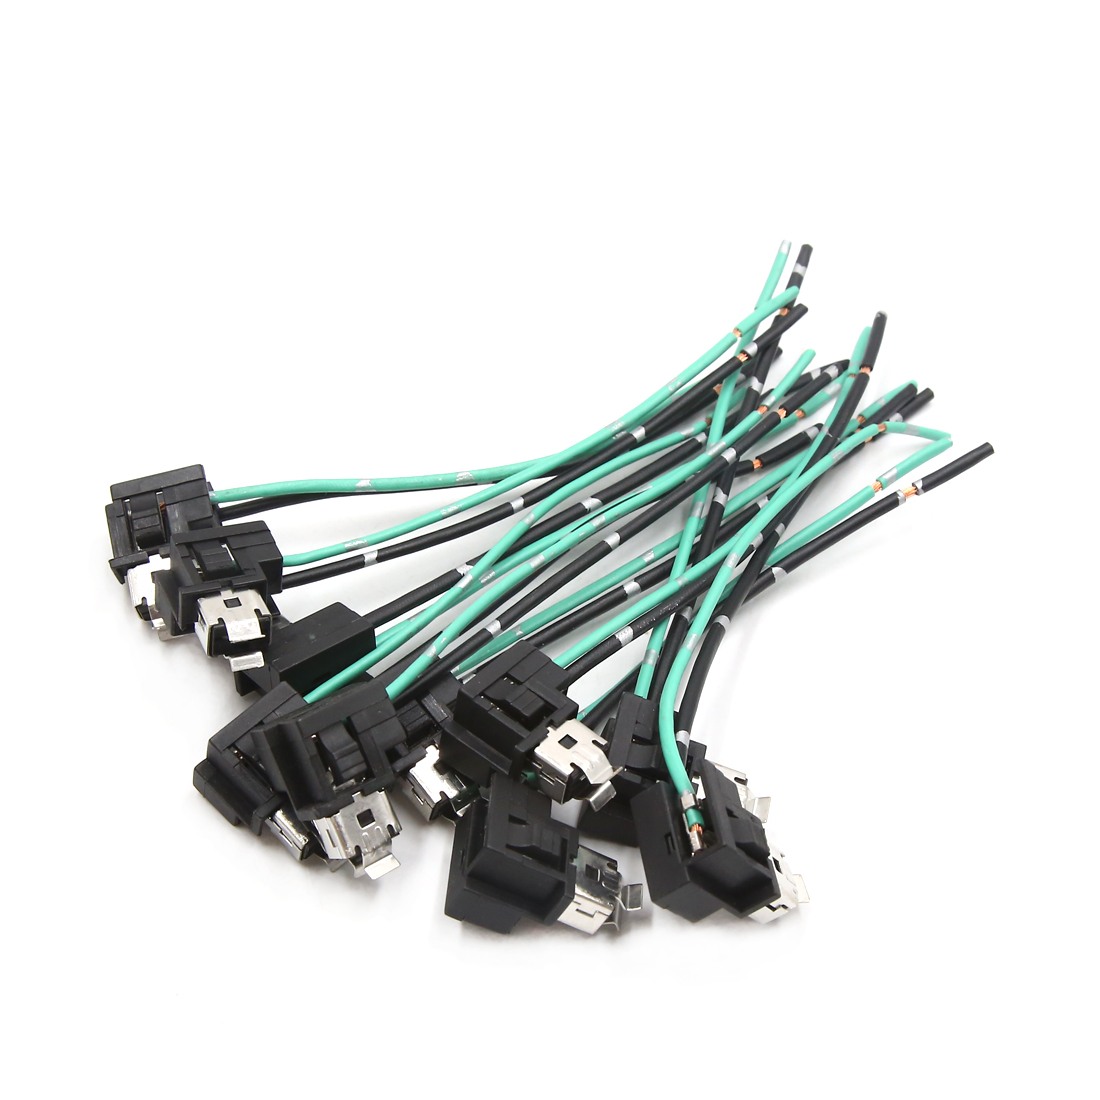 hight resolution of 10pcs h1 halogen fog light lamp extension wire harness socket connector for car